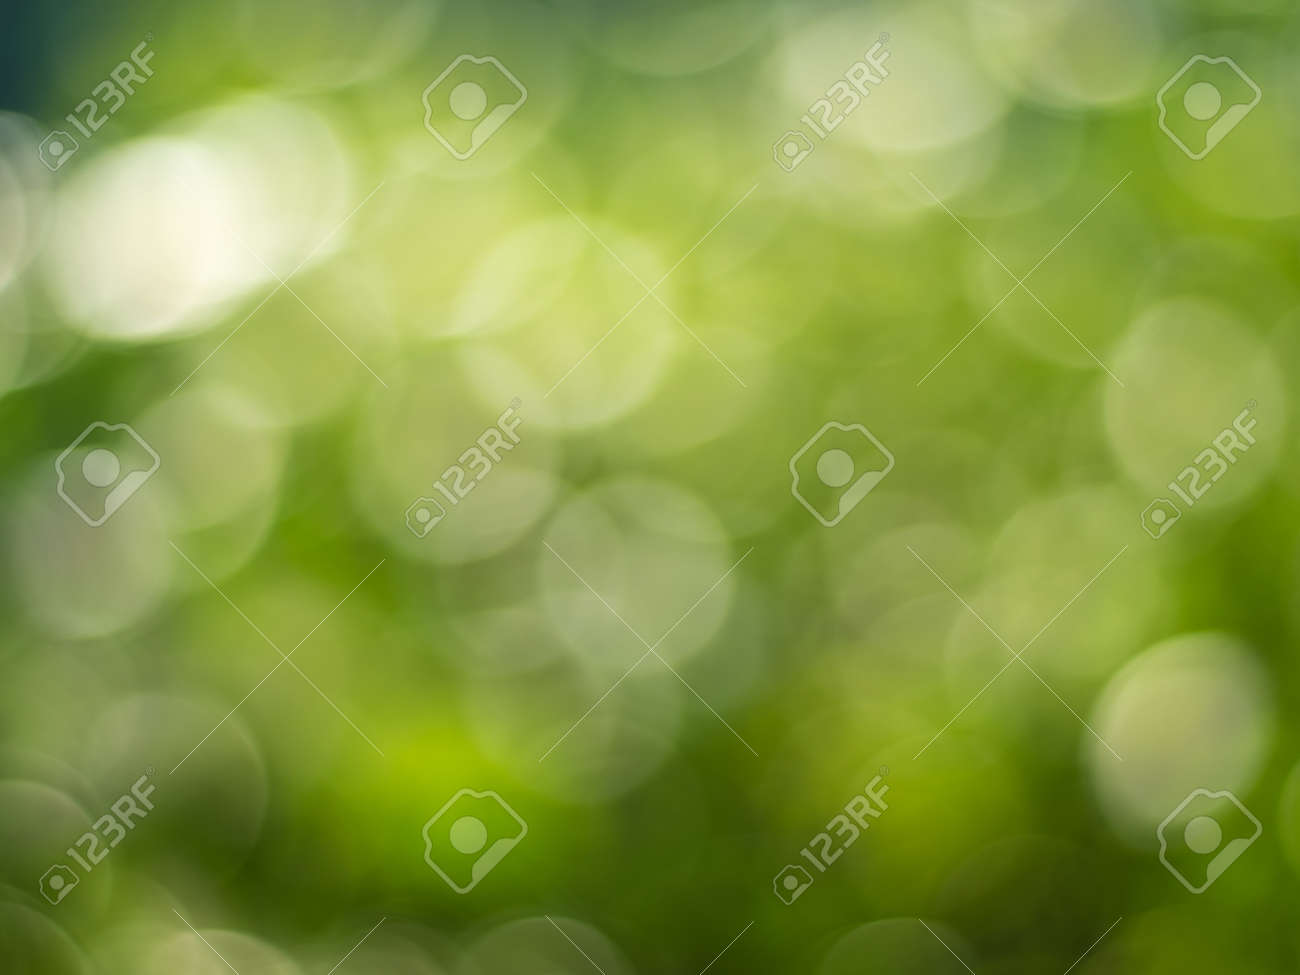 Lights and Green with yellow bokeh on nature defocus abstract blur background. Abstract background yellow and green tones of natural outdoors bokeh - 172430192